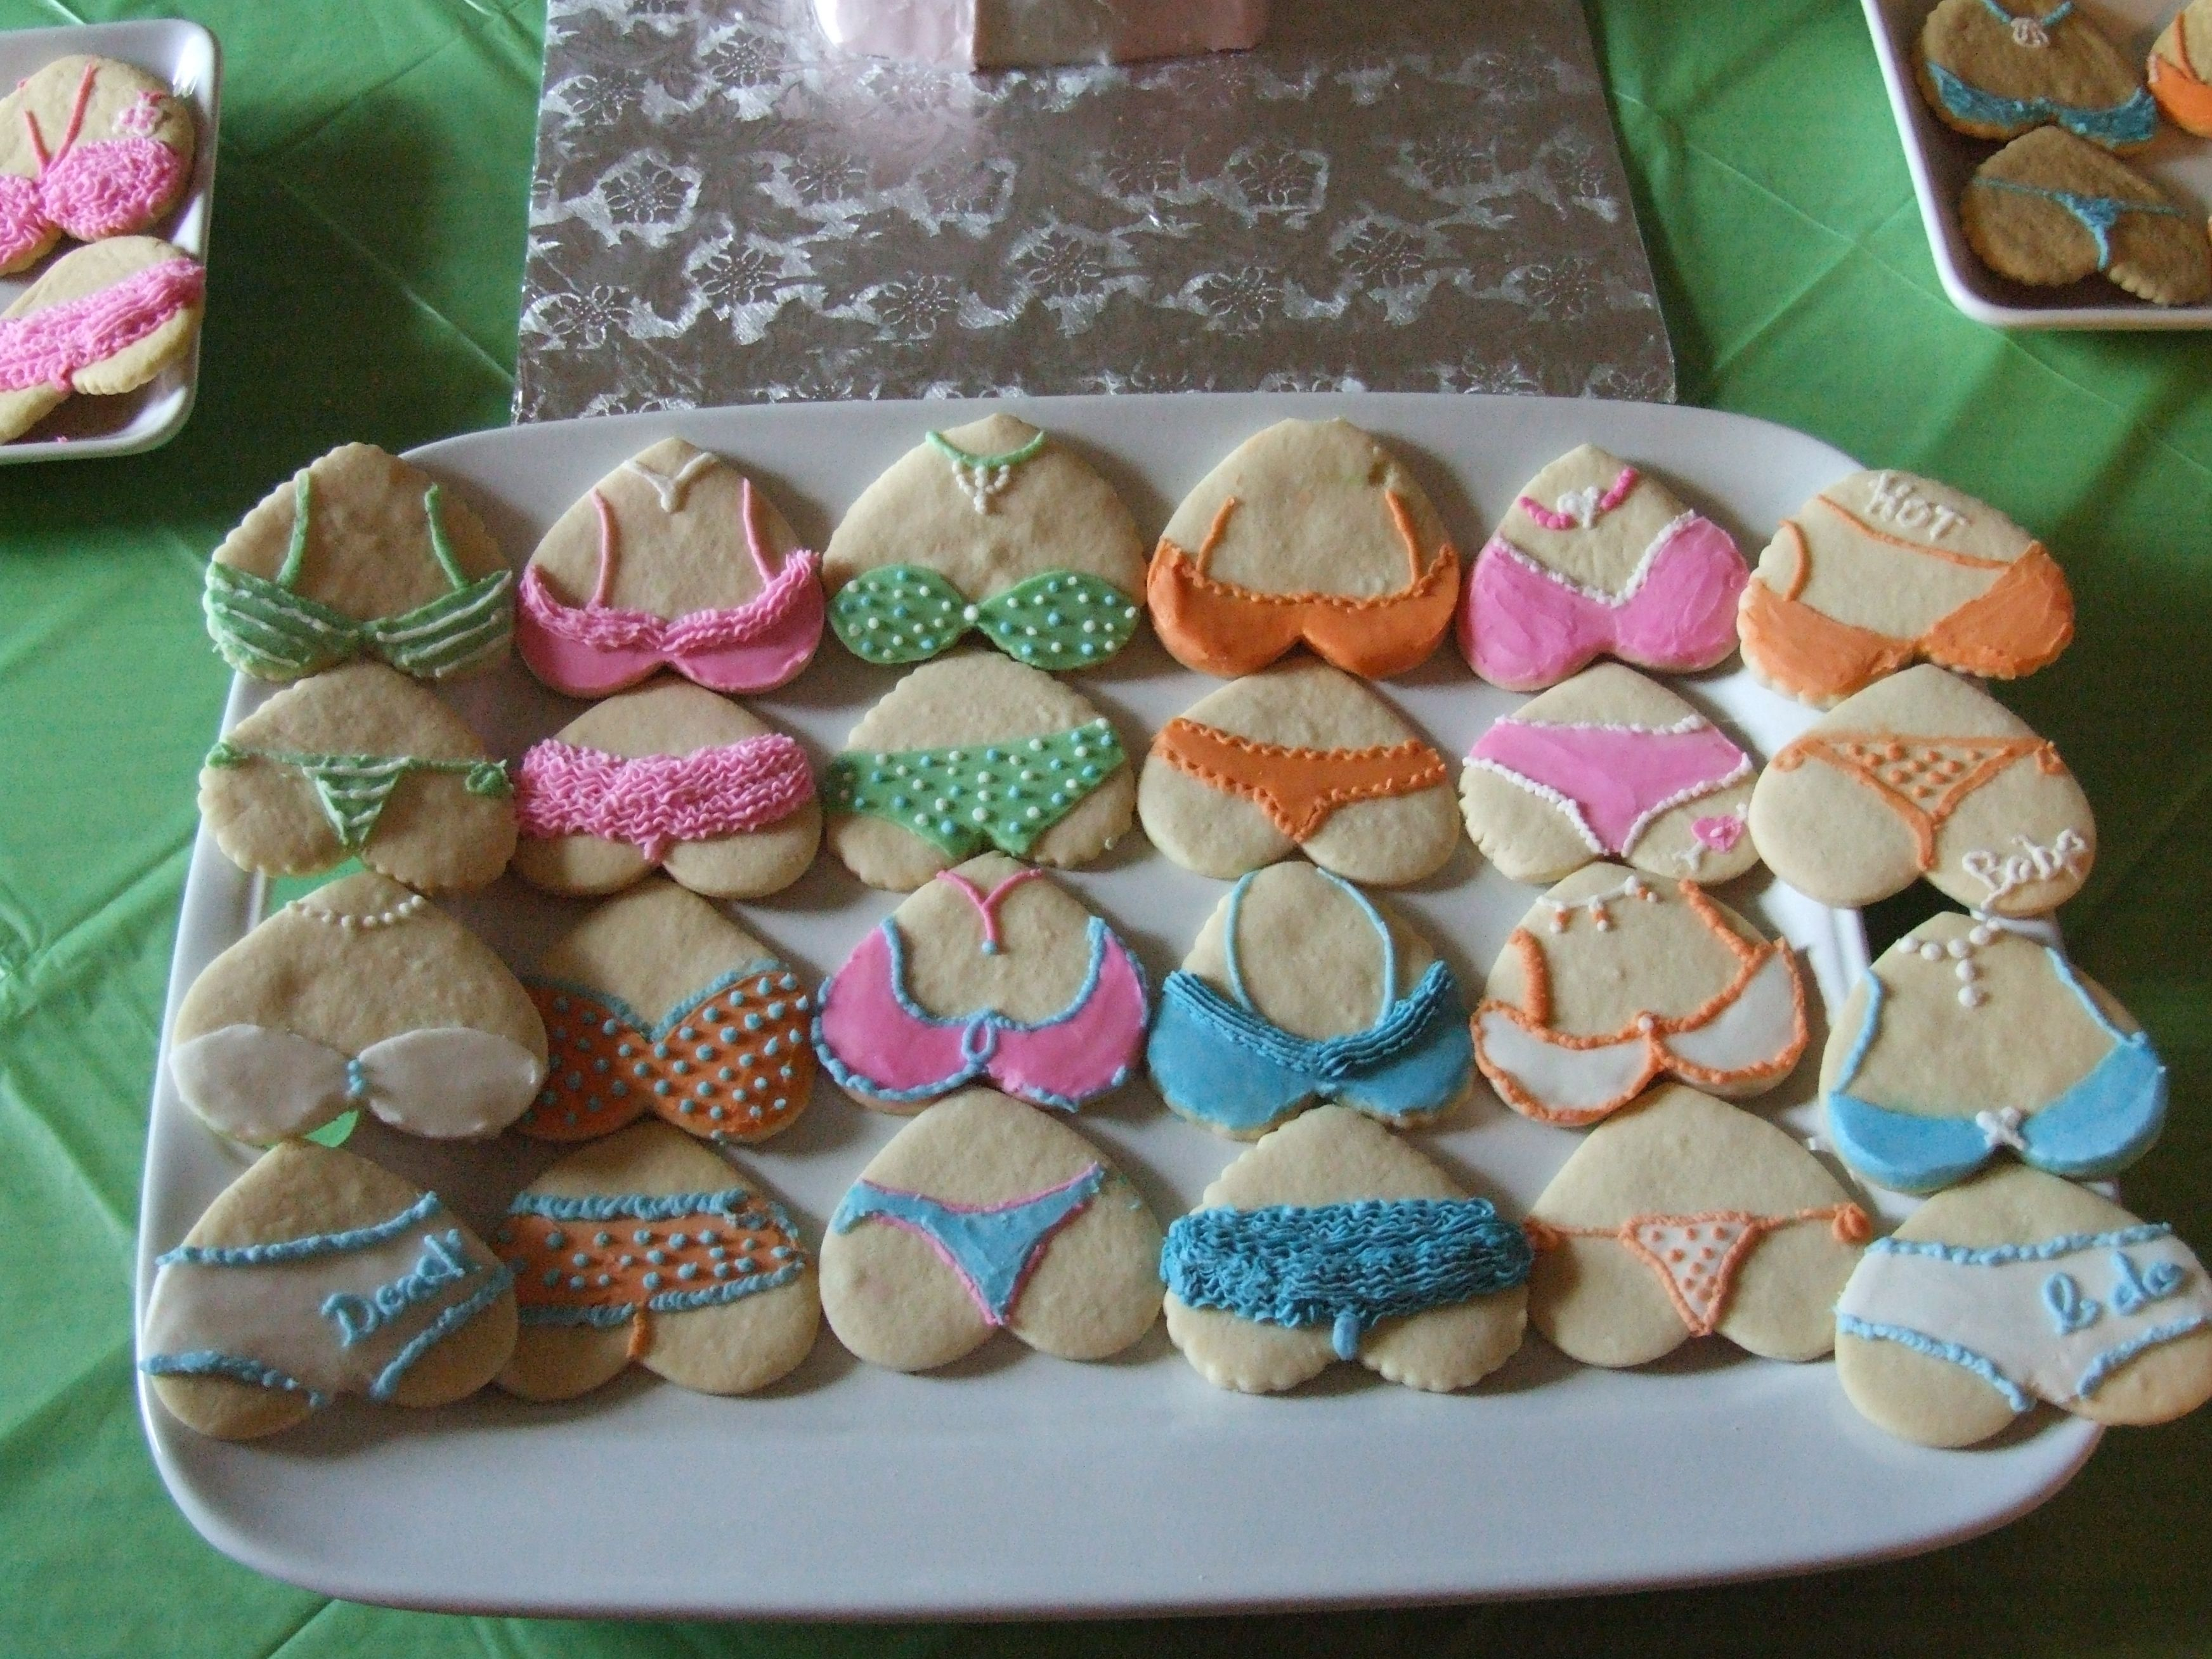 Tush Cookies Gluten free cakes, Cake shop, Sugar cookie